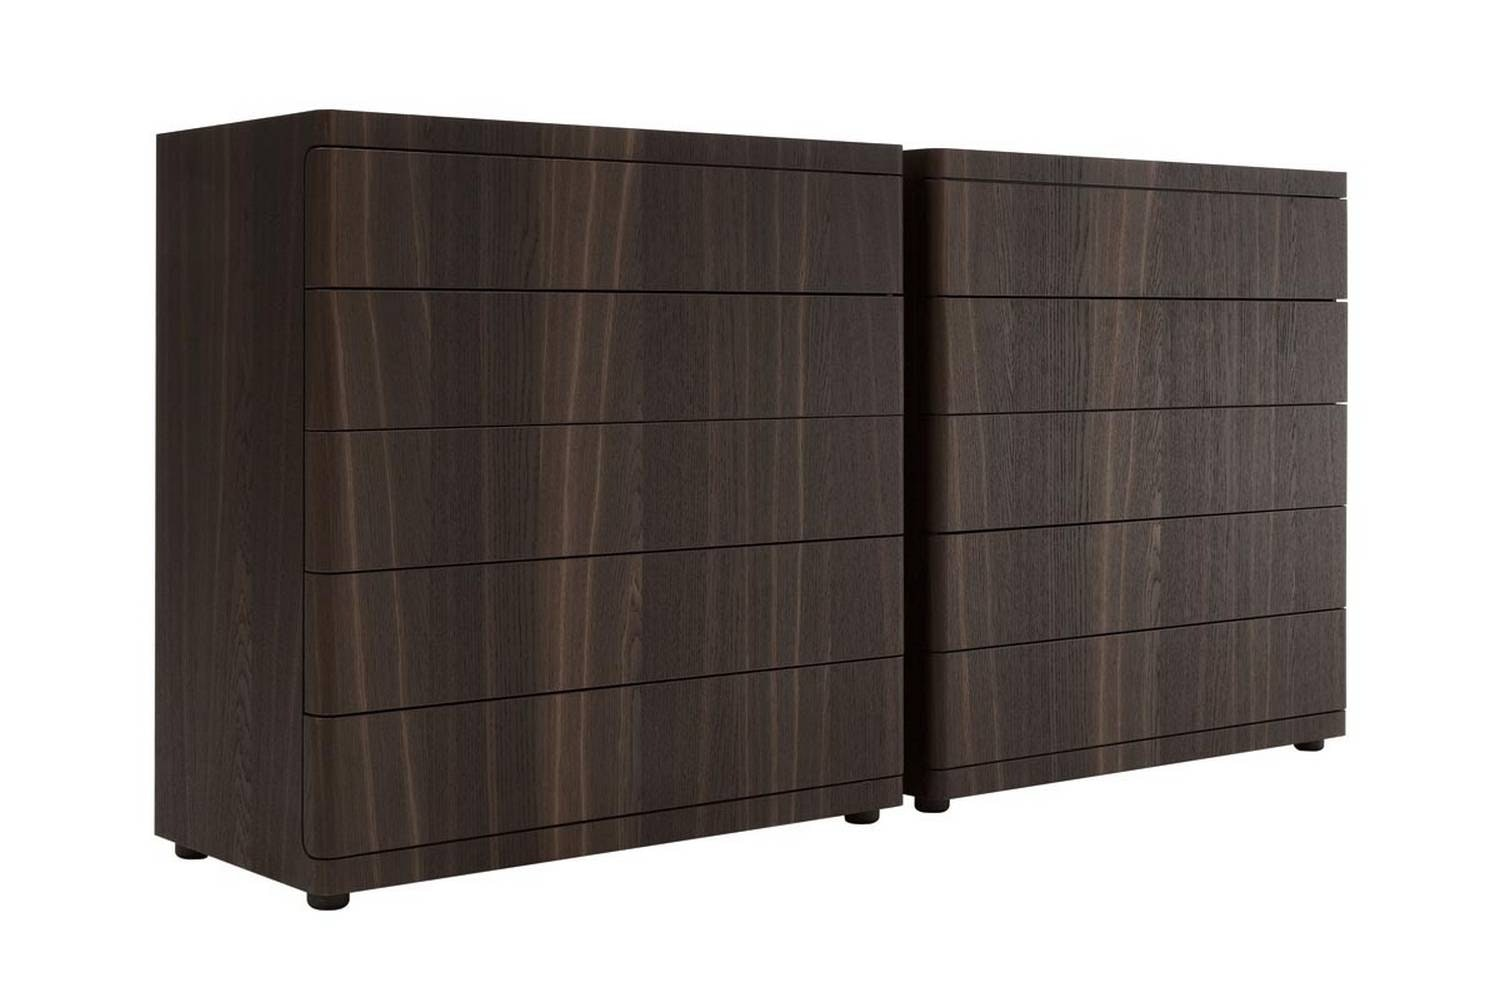 You Chest of Drawers by D. & t. for Poliform